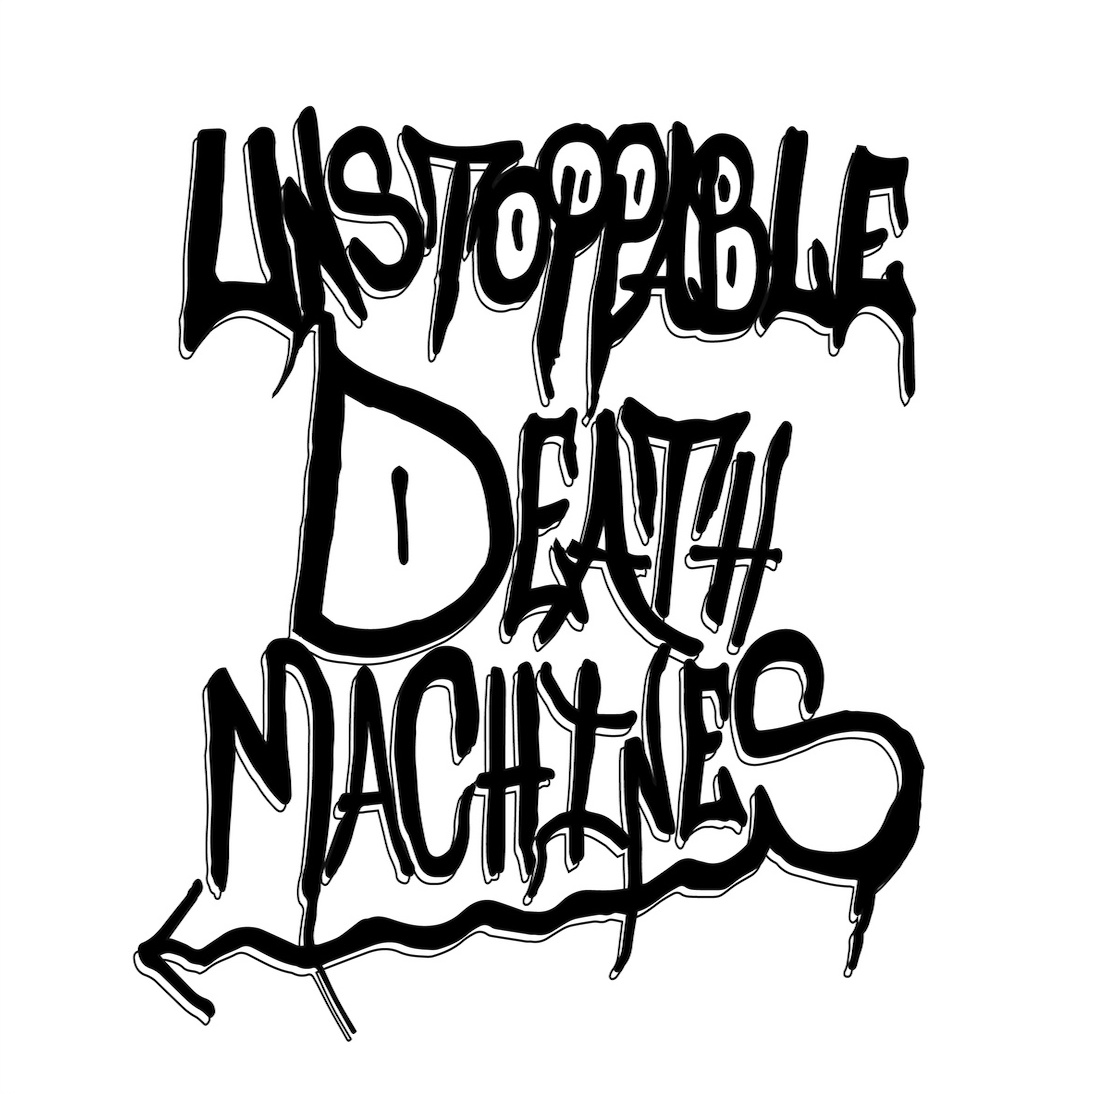 10-unstoppable-death-machines-single-clarity.jpg